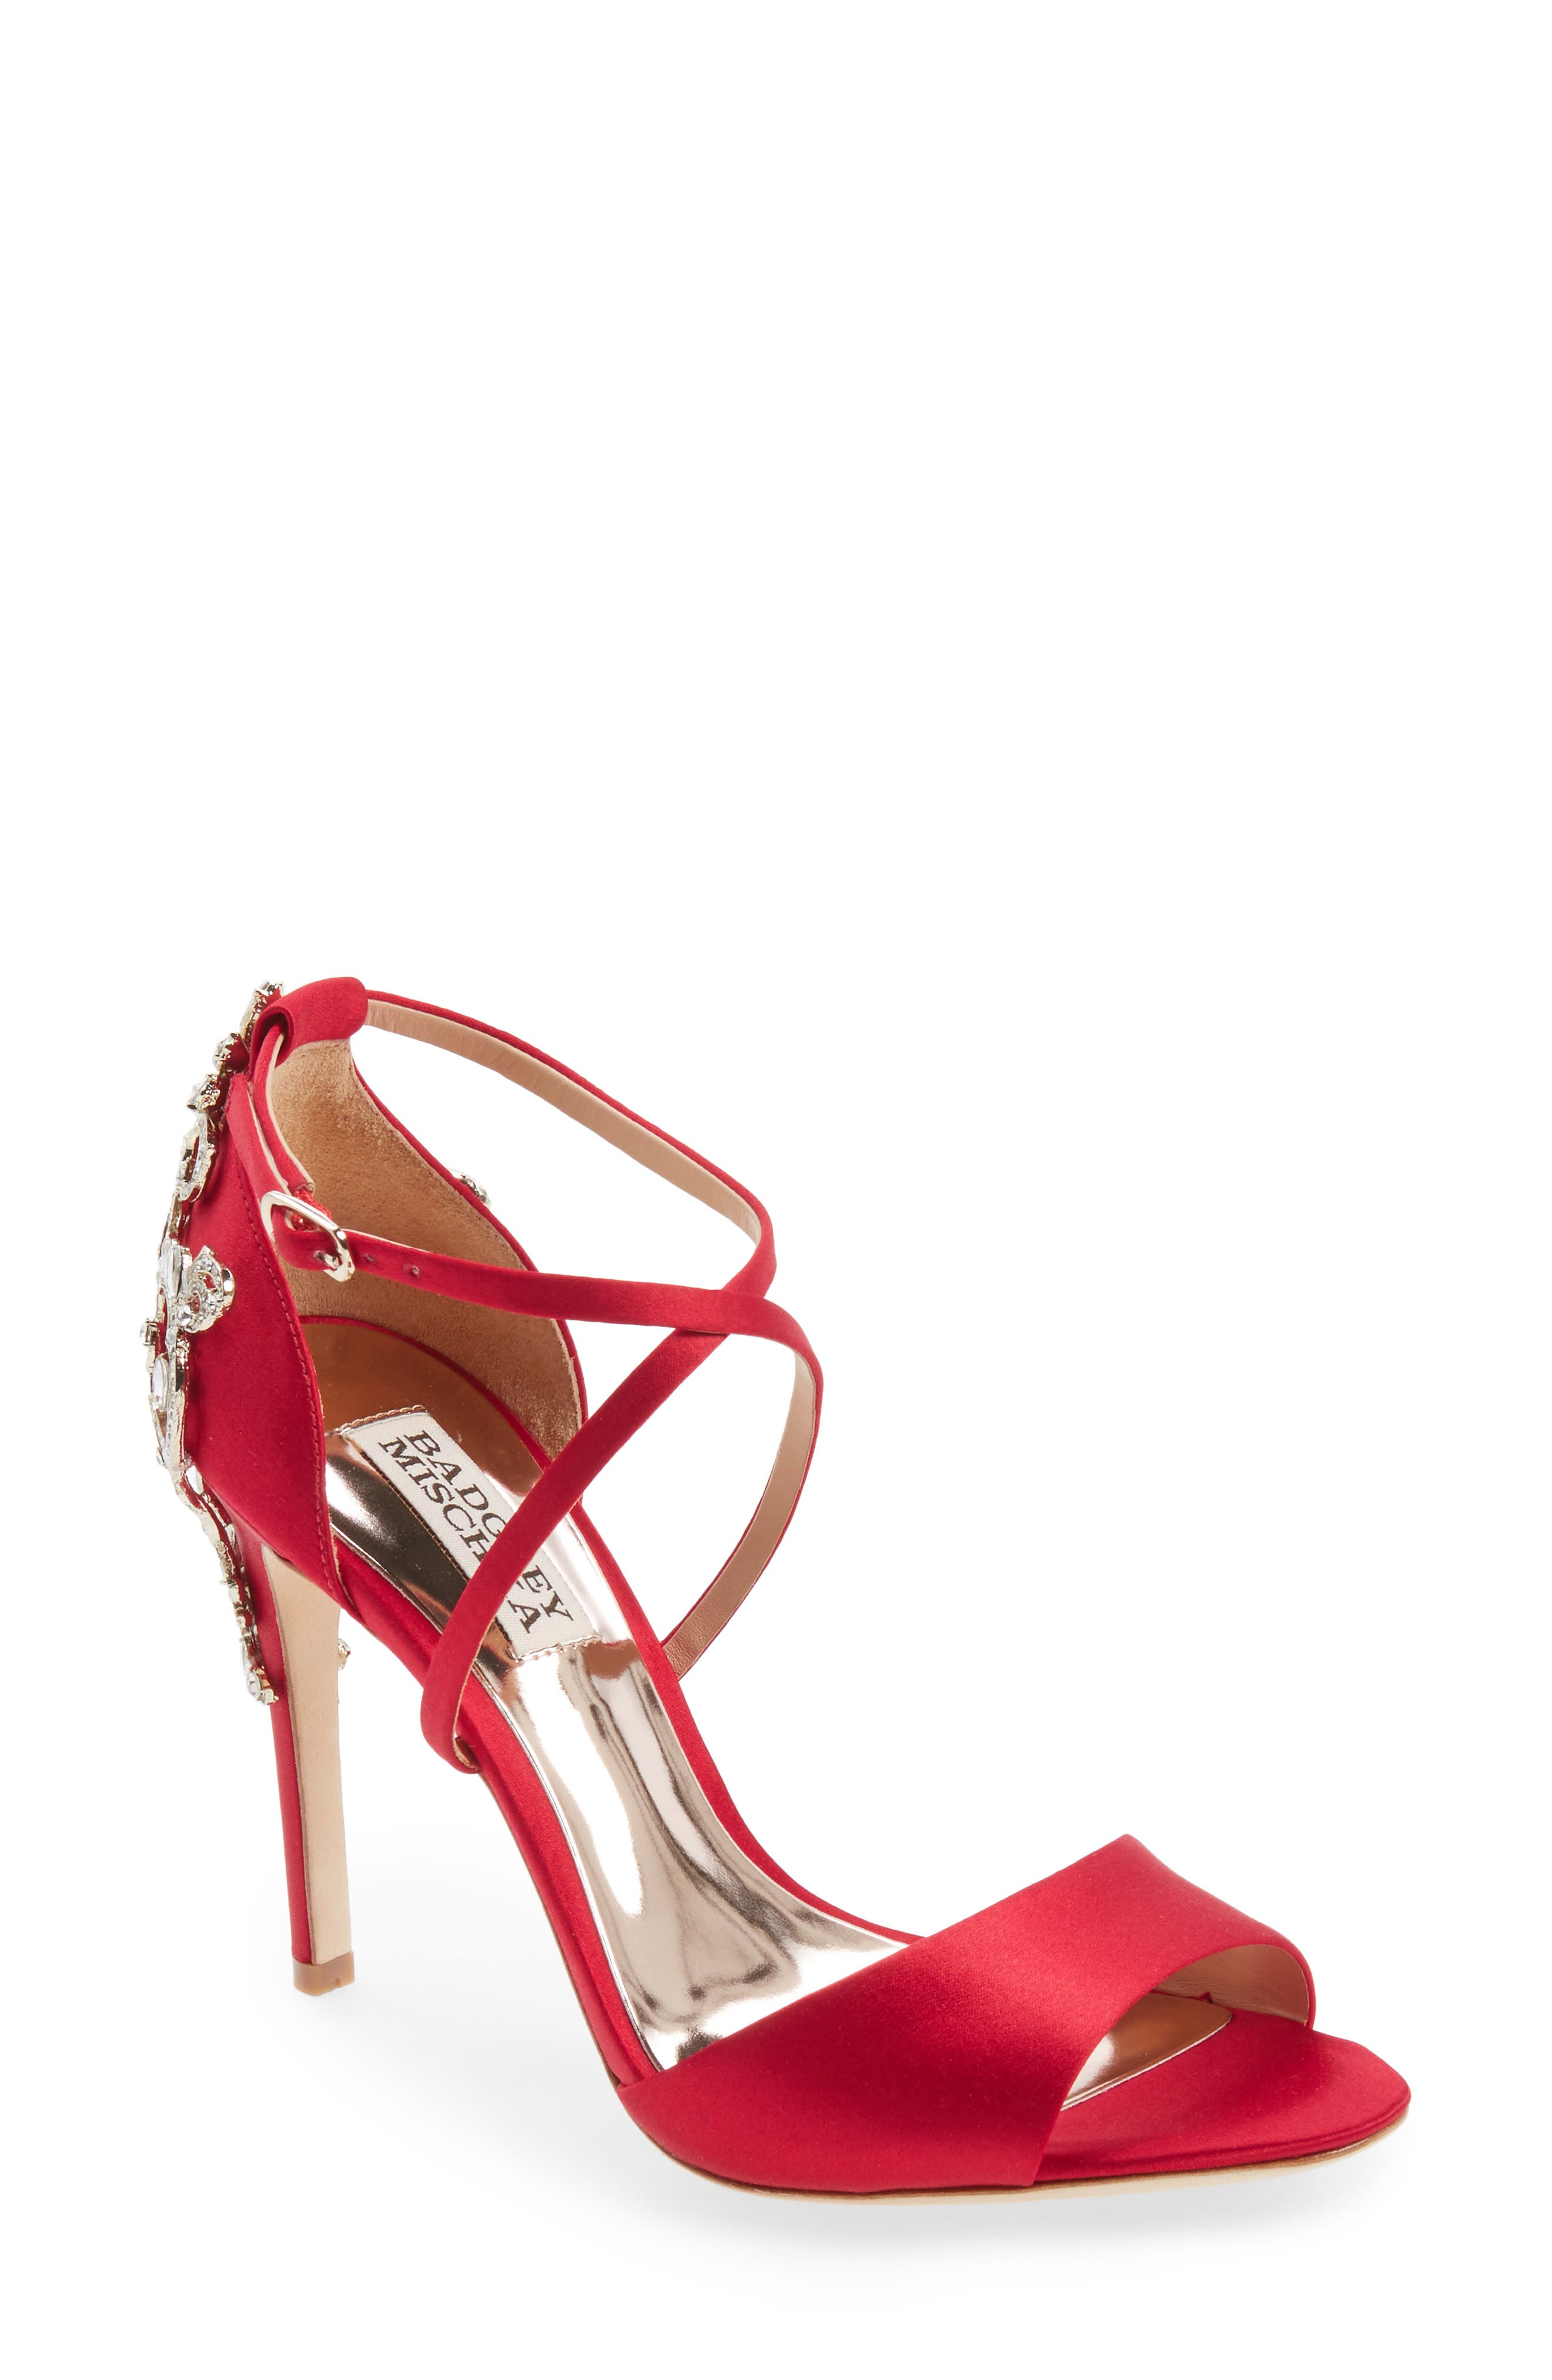 Red Strappy Heels & High-Heel Shoes for Women | Nordstrom